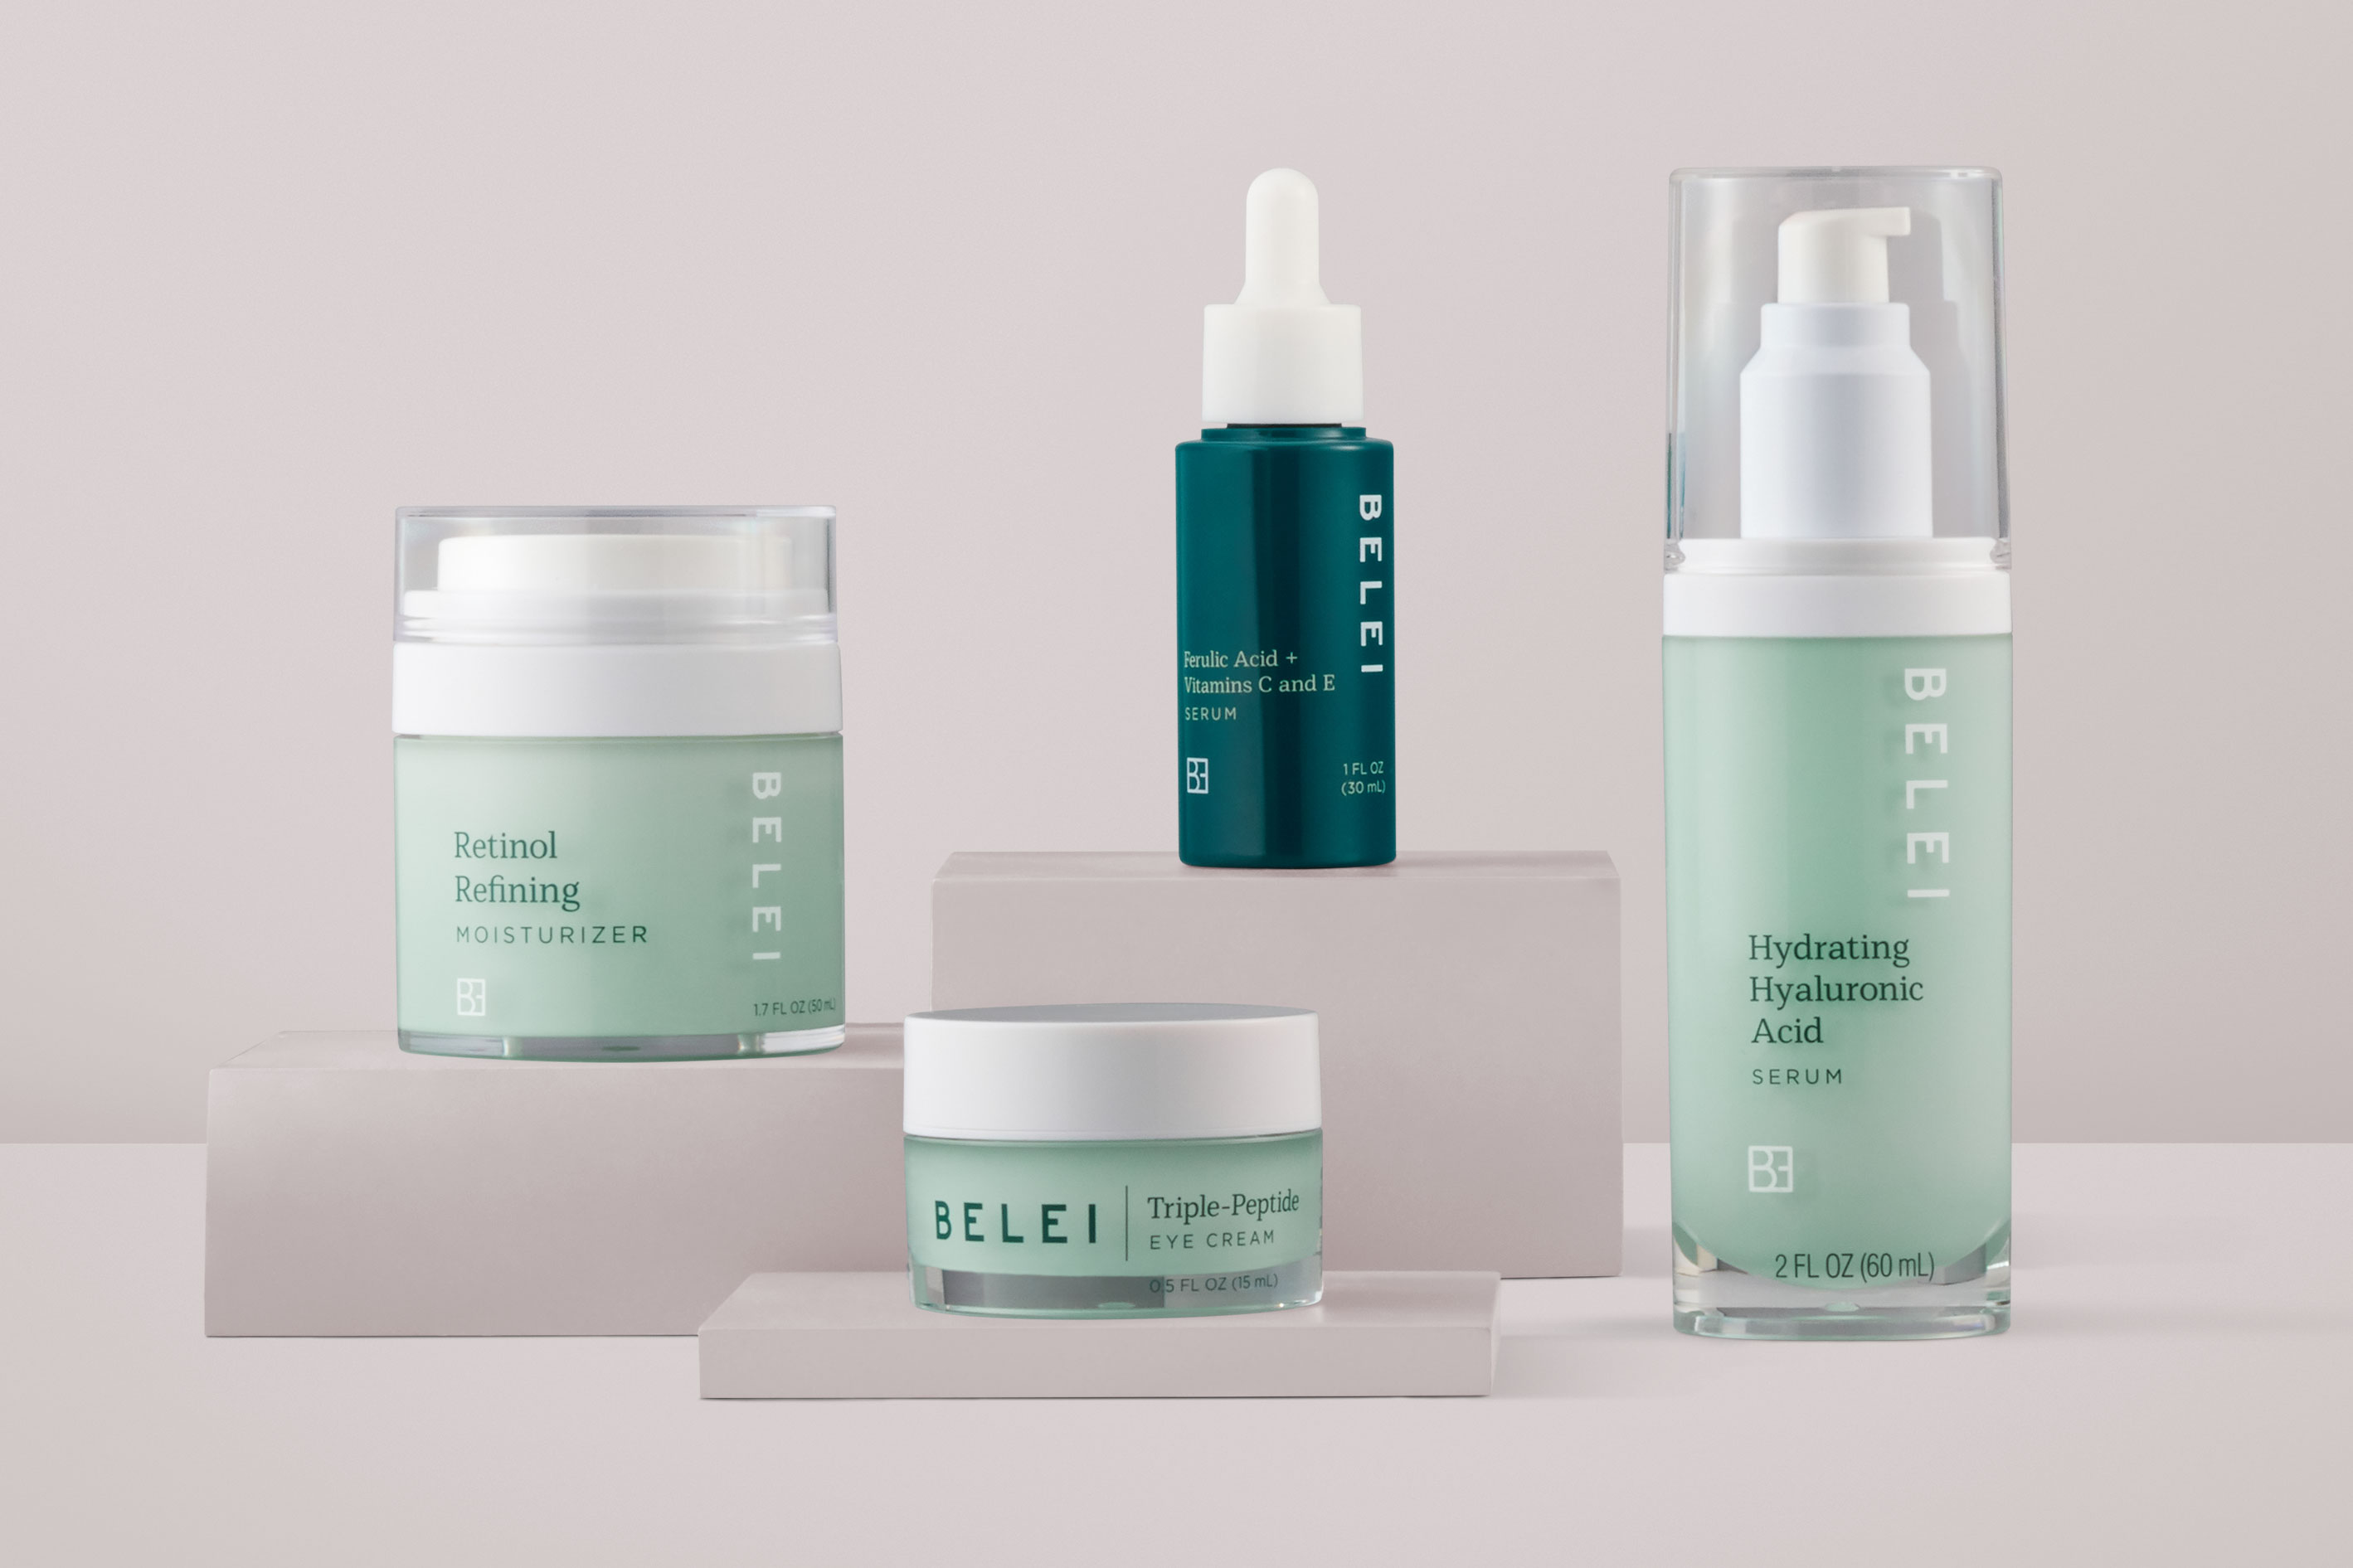 Belei is Amazon's first private-label skin-care brand.